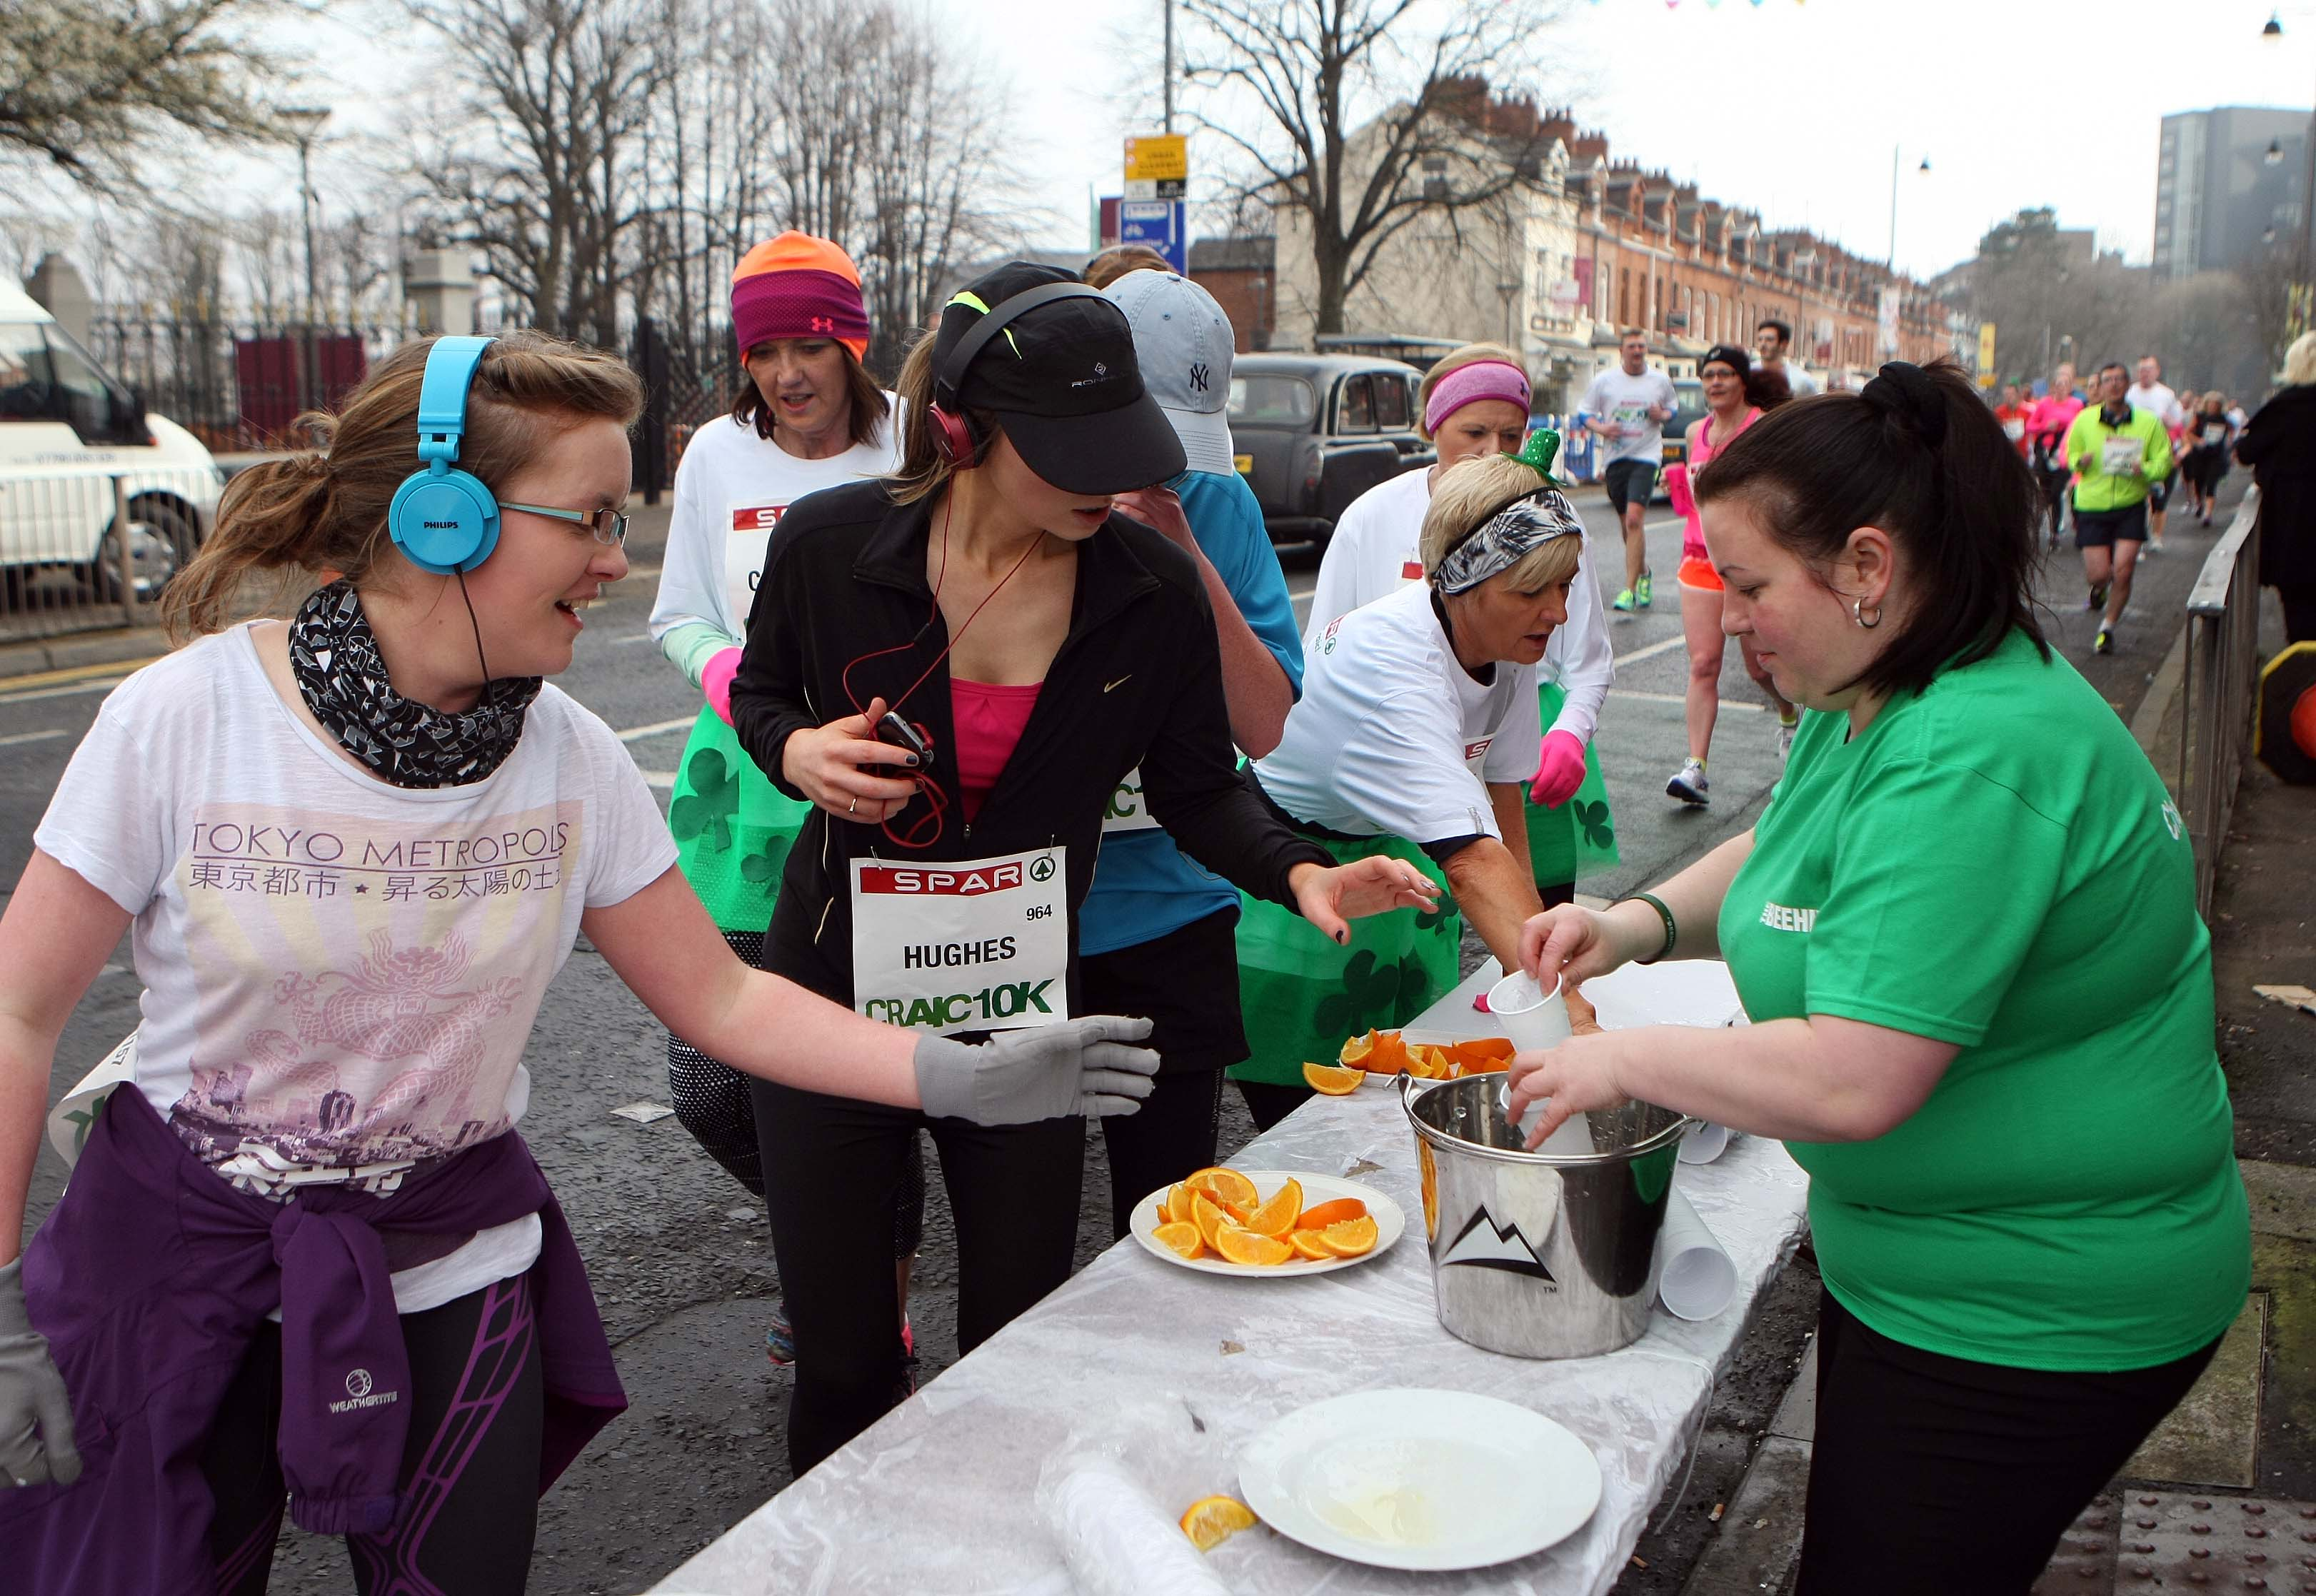 Tuesday 17-3-2015St Patrick's DaySPAR Craic 10k BelfastHelena McDonnell of the Beehive hands out the water for the thursty runnersSparCraic10K170315FP022